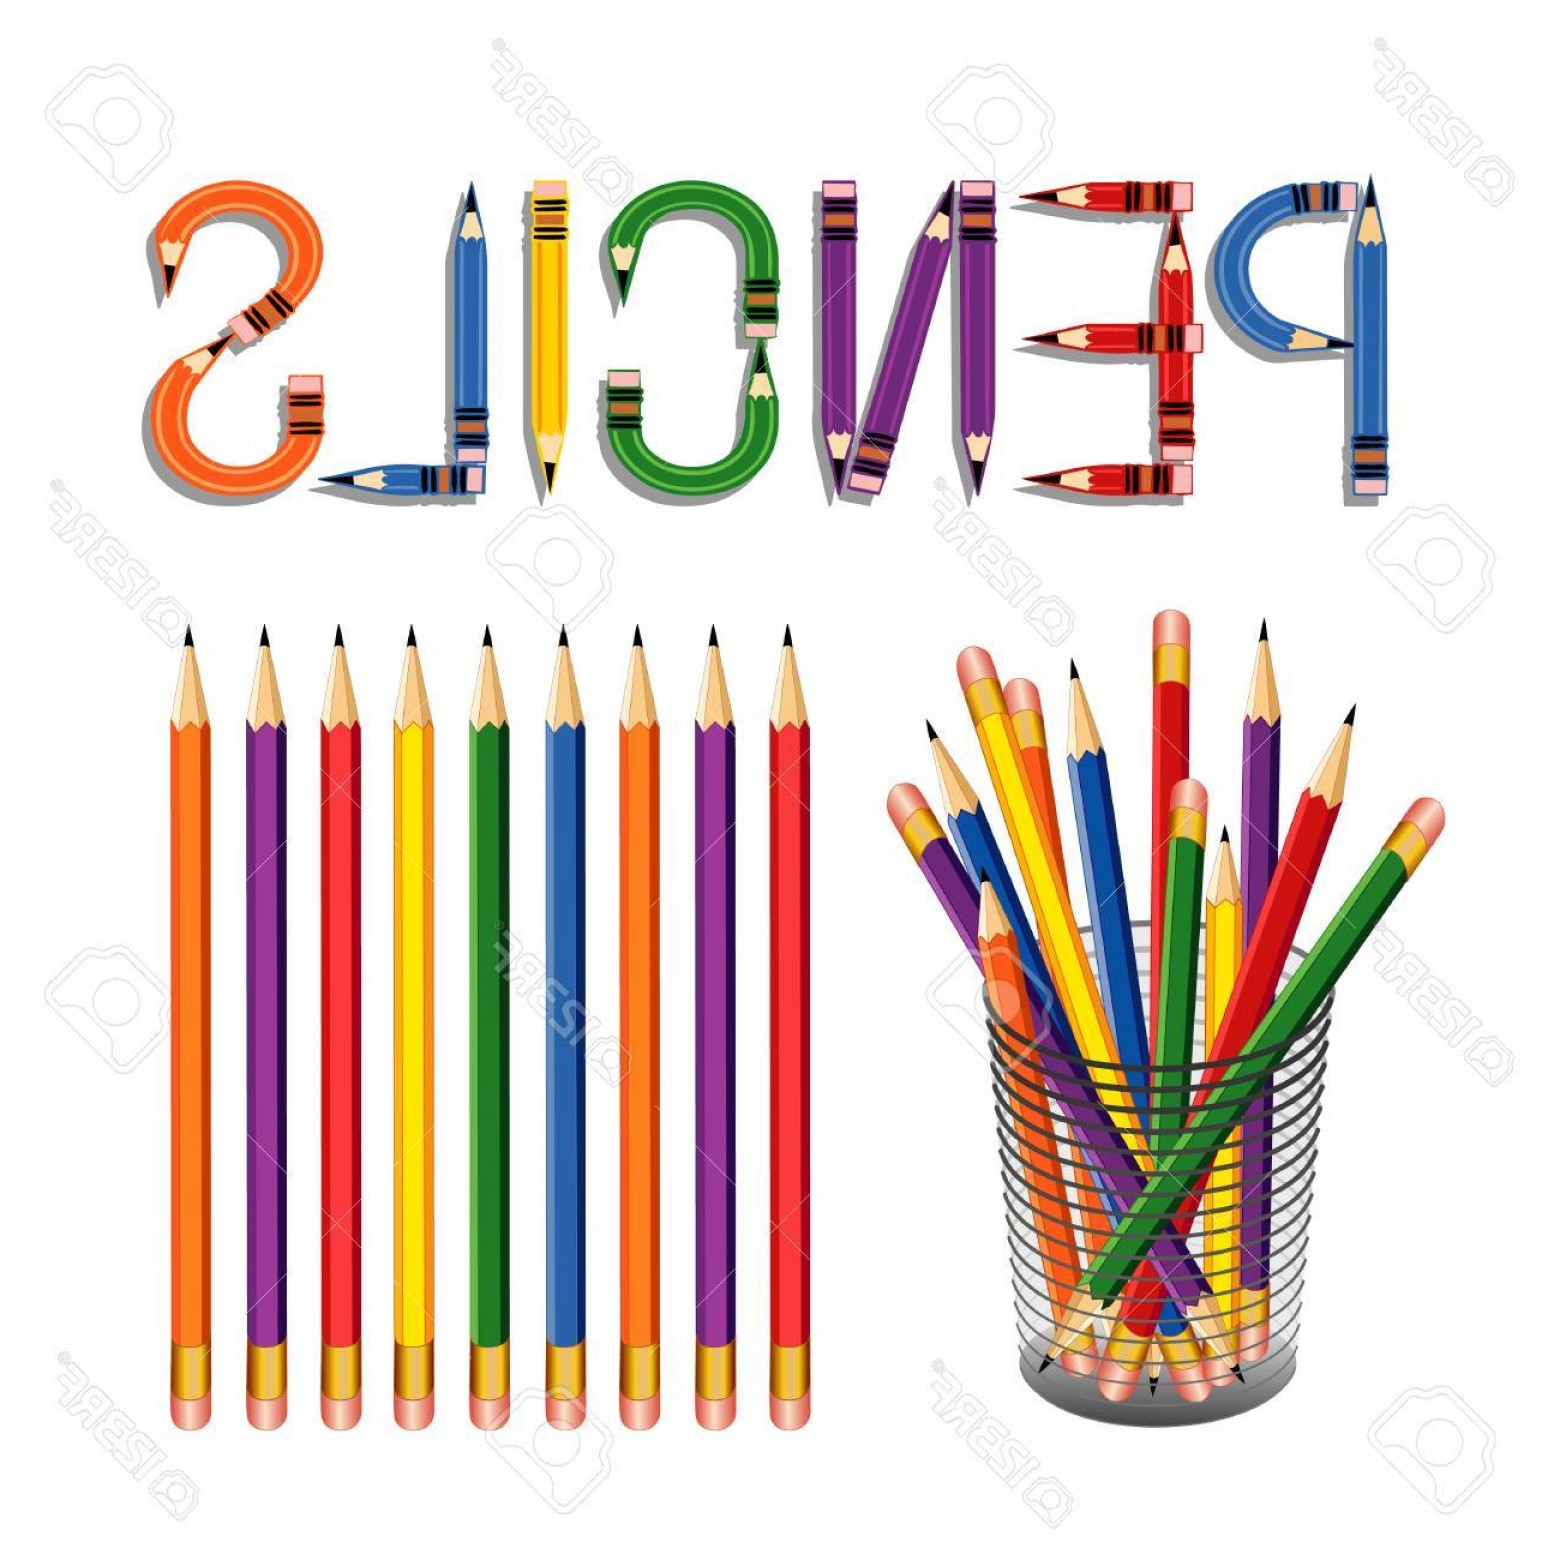 Ways To Write Vector BA: Photostock Vector Pencils With Erasers In A Desk Organizer For Home Office Back To School Projects With Pencil Ding Ba